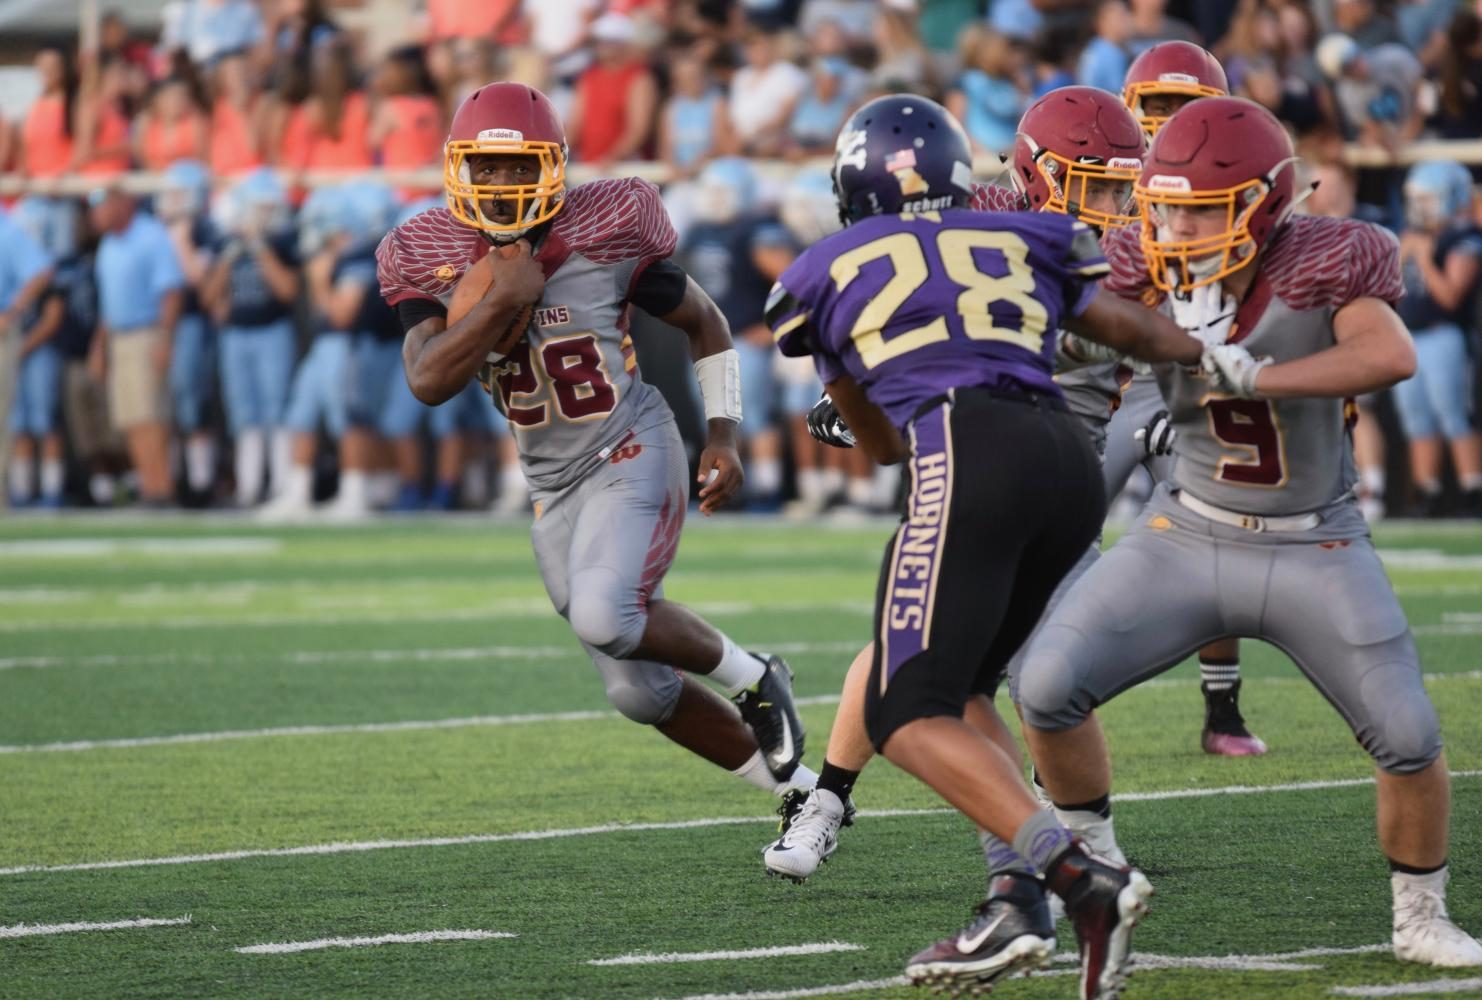 Sophomore Dre'Maine Fanning from Tonka faces off against number 28 from Northtown as he tries to avoid being blocked while running with the ball.